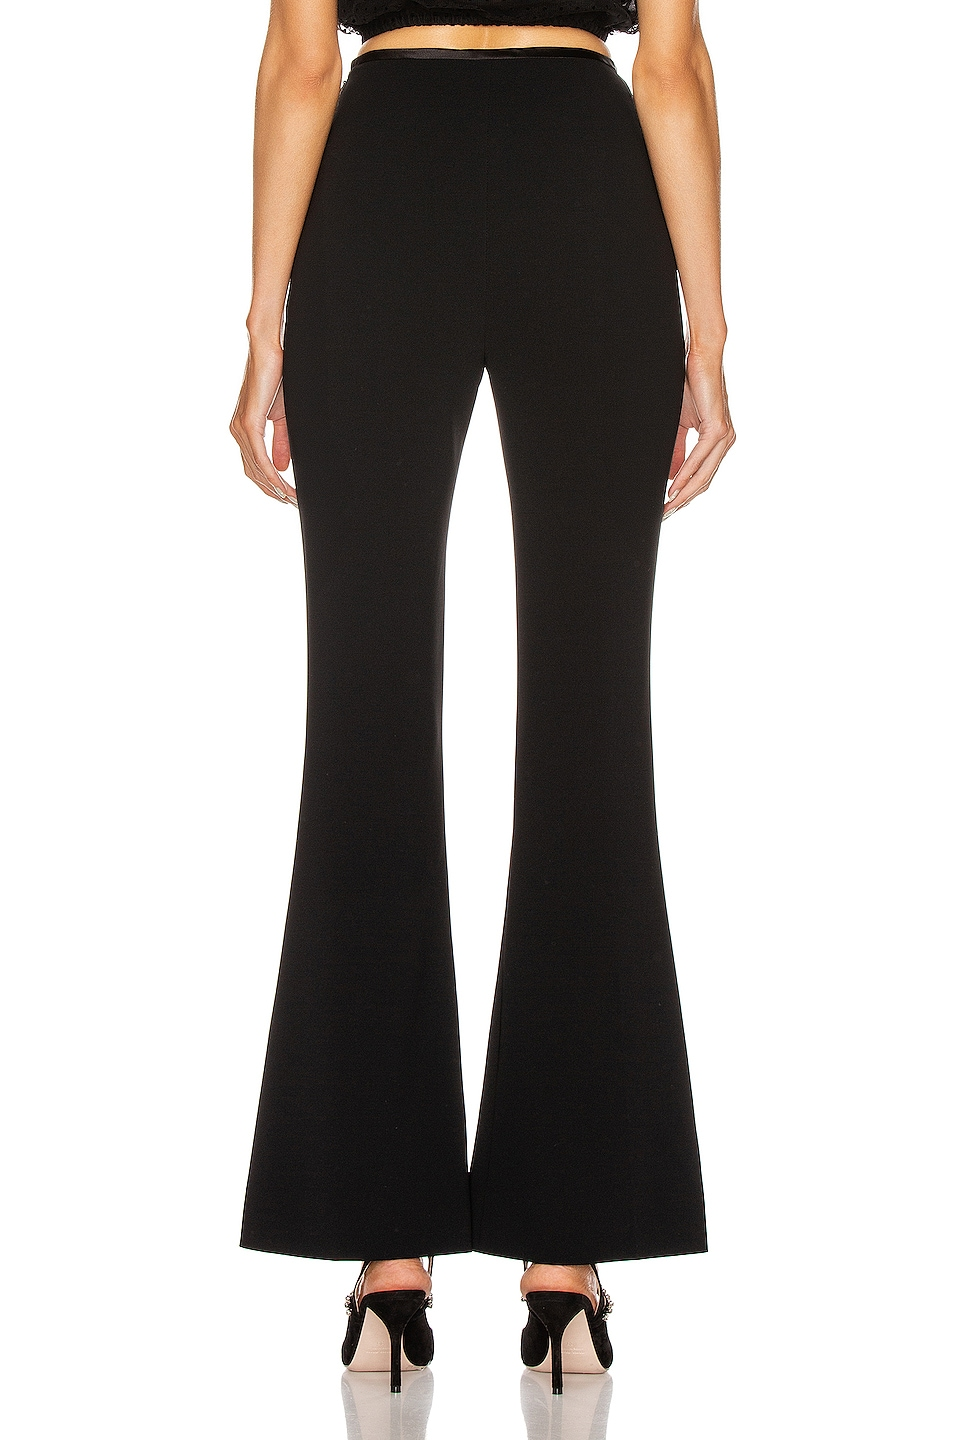 Image 3 of Miu Miu Flare Pant in Black